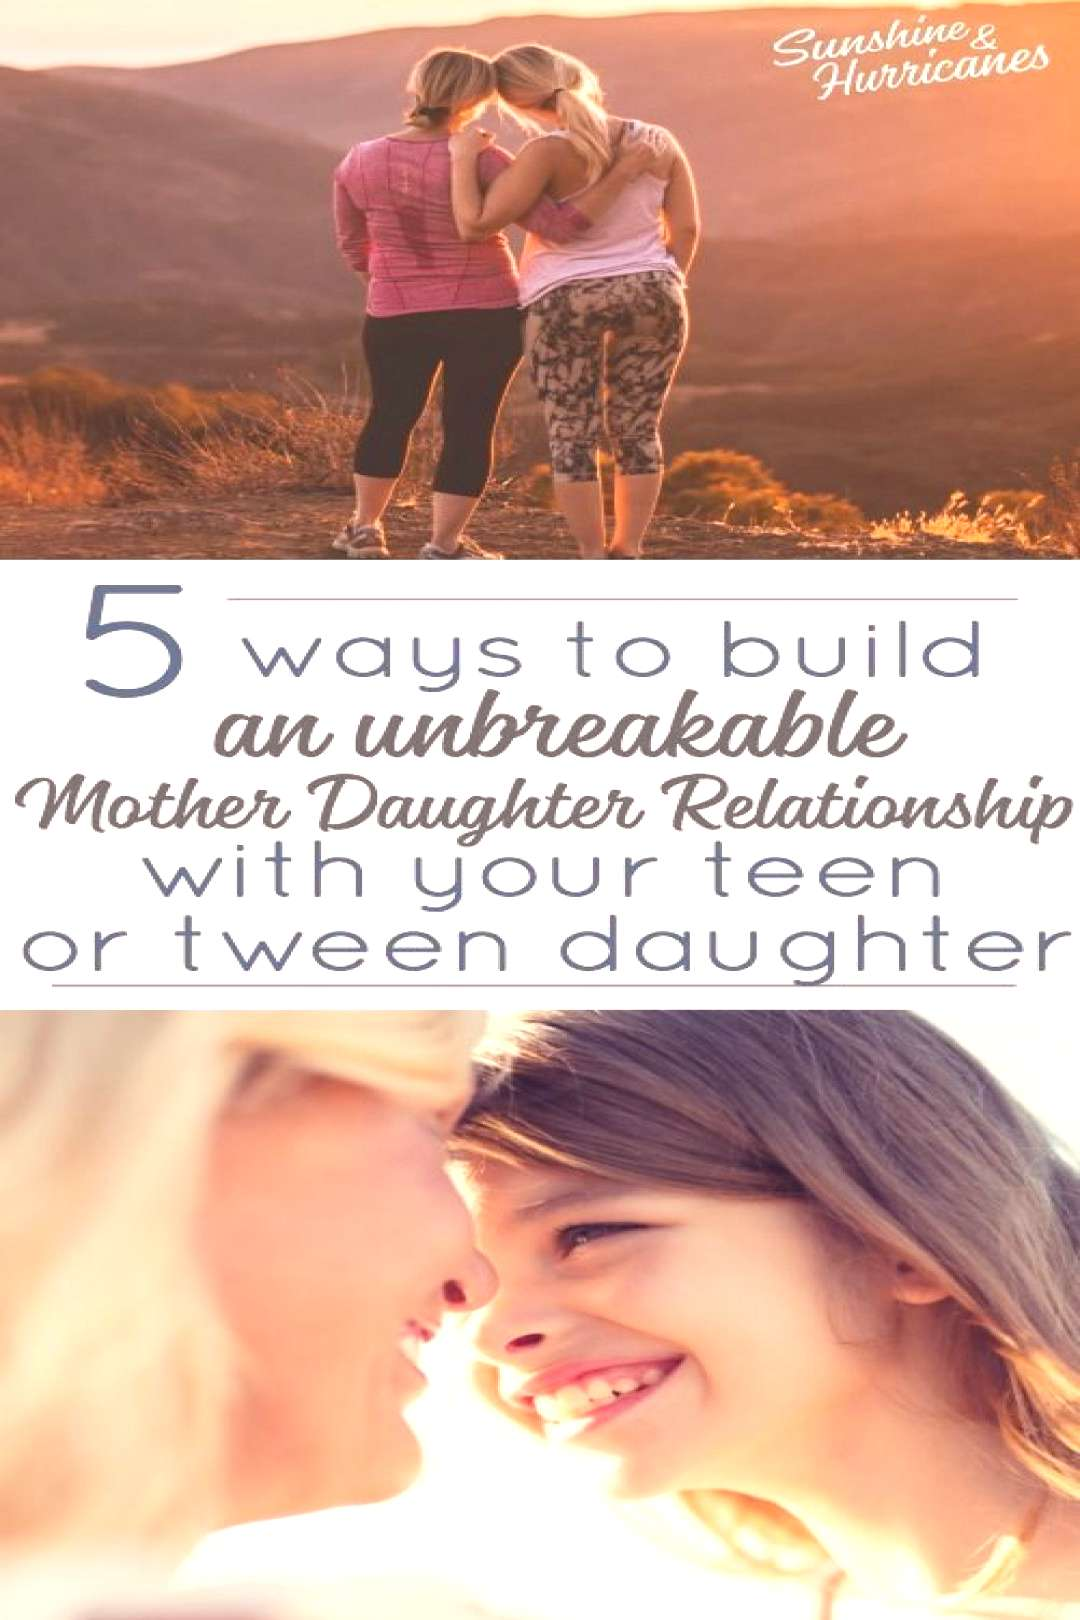 Do you want to be closer to your adolescent daughter? Here are 5 Ways You Can Build an Unbreakable